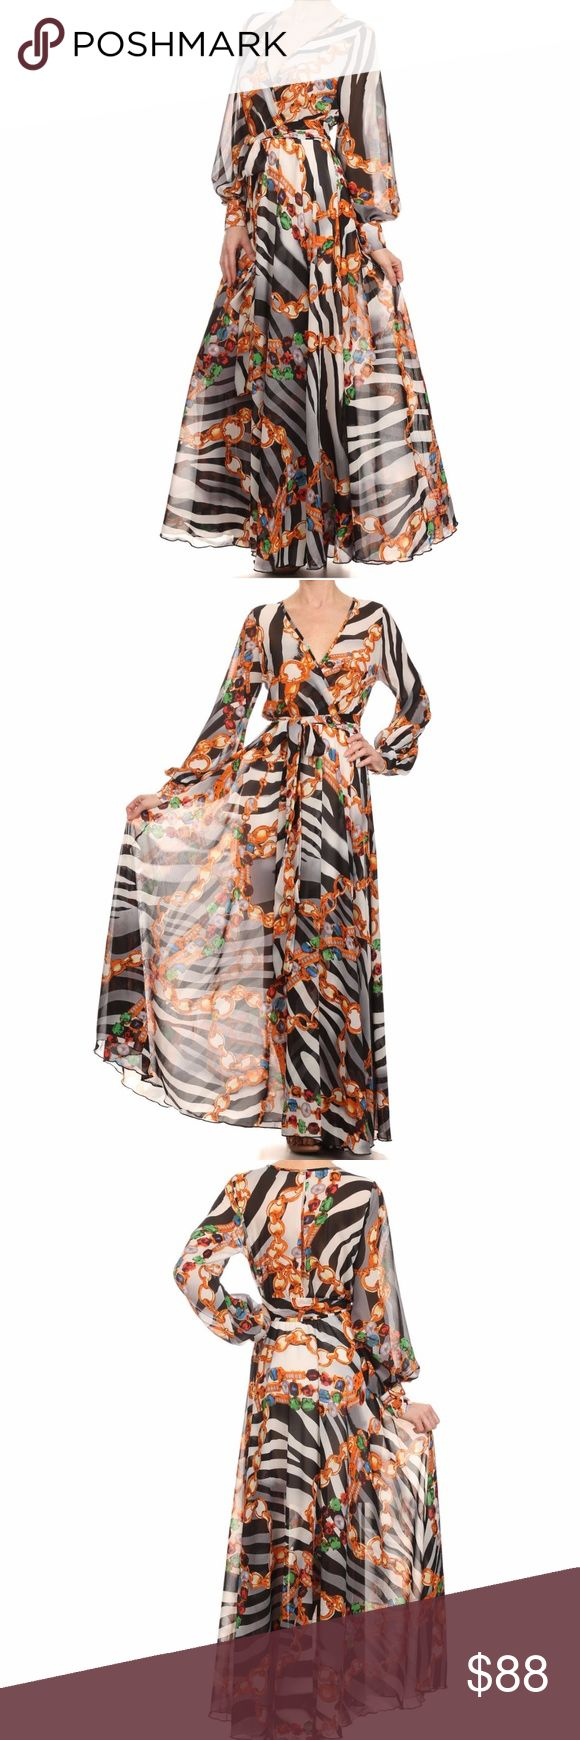 Zebra Chain Print Chiffon Faux Wrap Maxi Dress Beautiful Chiffon Faux Wrap Maxi Dress. Gorgeous Animal Zebra Chain Print. Surplice V-neck, elastic waist with attached sash belt, sheer long sleeves with 2-button cuffs, full sweep flowing skirt. Skirt has a stretch mini slip lining, the top is sheer chiffon and has no lining. Made of polyester chiffon. High Quality. Made in USA. Brand New factory direct.  Size S 2/4: Bust 33-34 Waist 25-26 Hips 35-36 Size M 6/8: Bust 35-36 Waist 27-28 Hips…